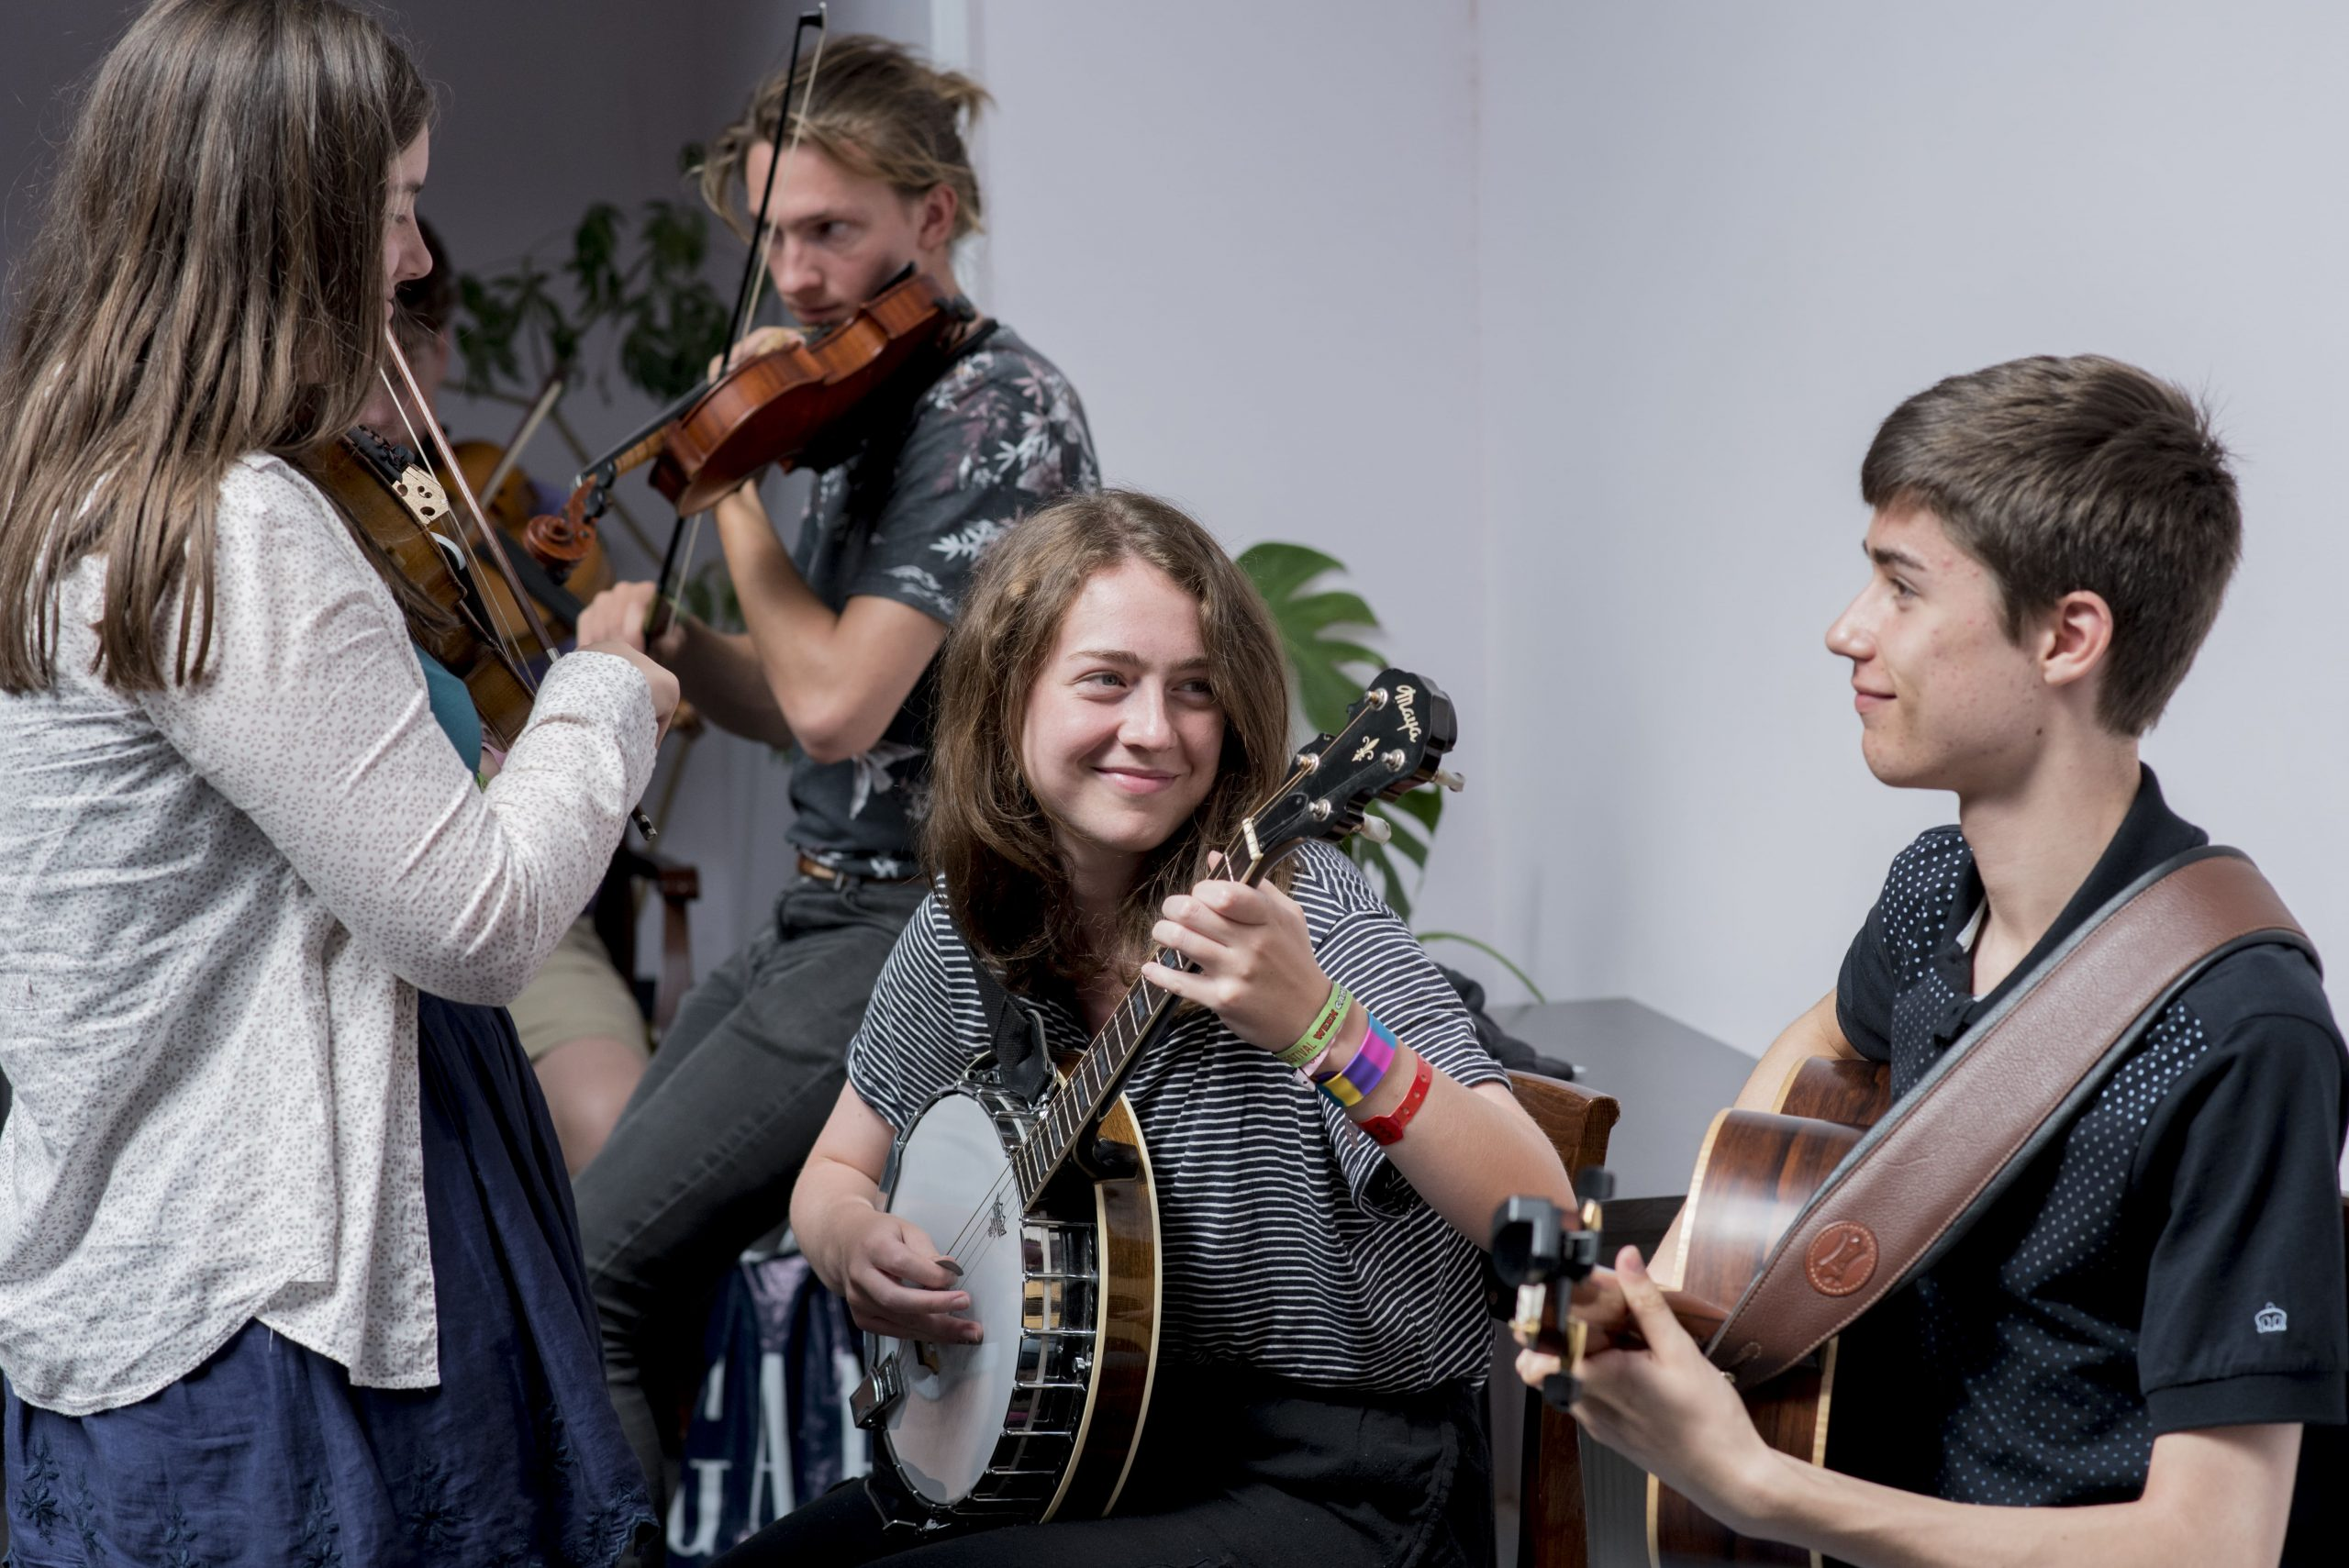 A girl with brown hair to her shoulders is playing a banjo. She is smiling and looking at a boy on the right of the picture. He has very short dark hair, and is also smiling. He appears to be playing a guitar, though it's mostly hidden. They are both seated.